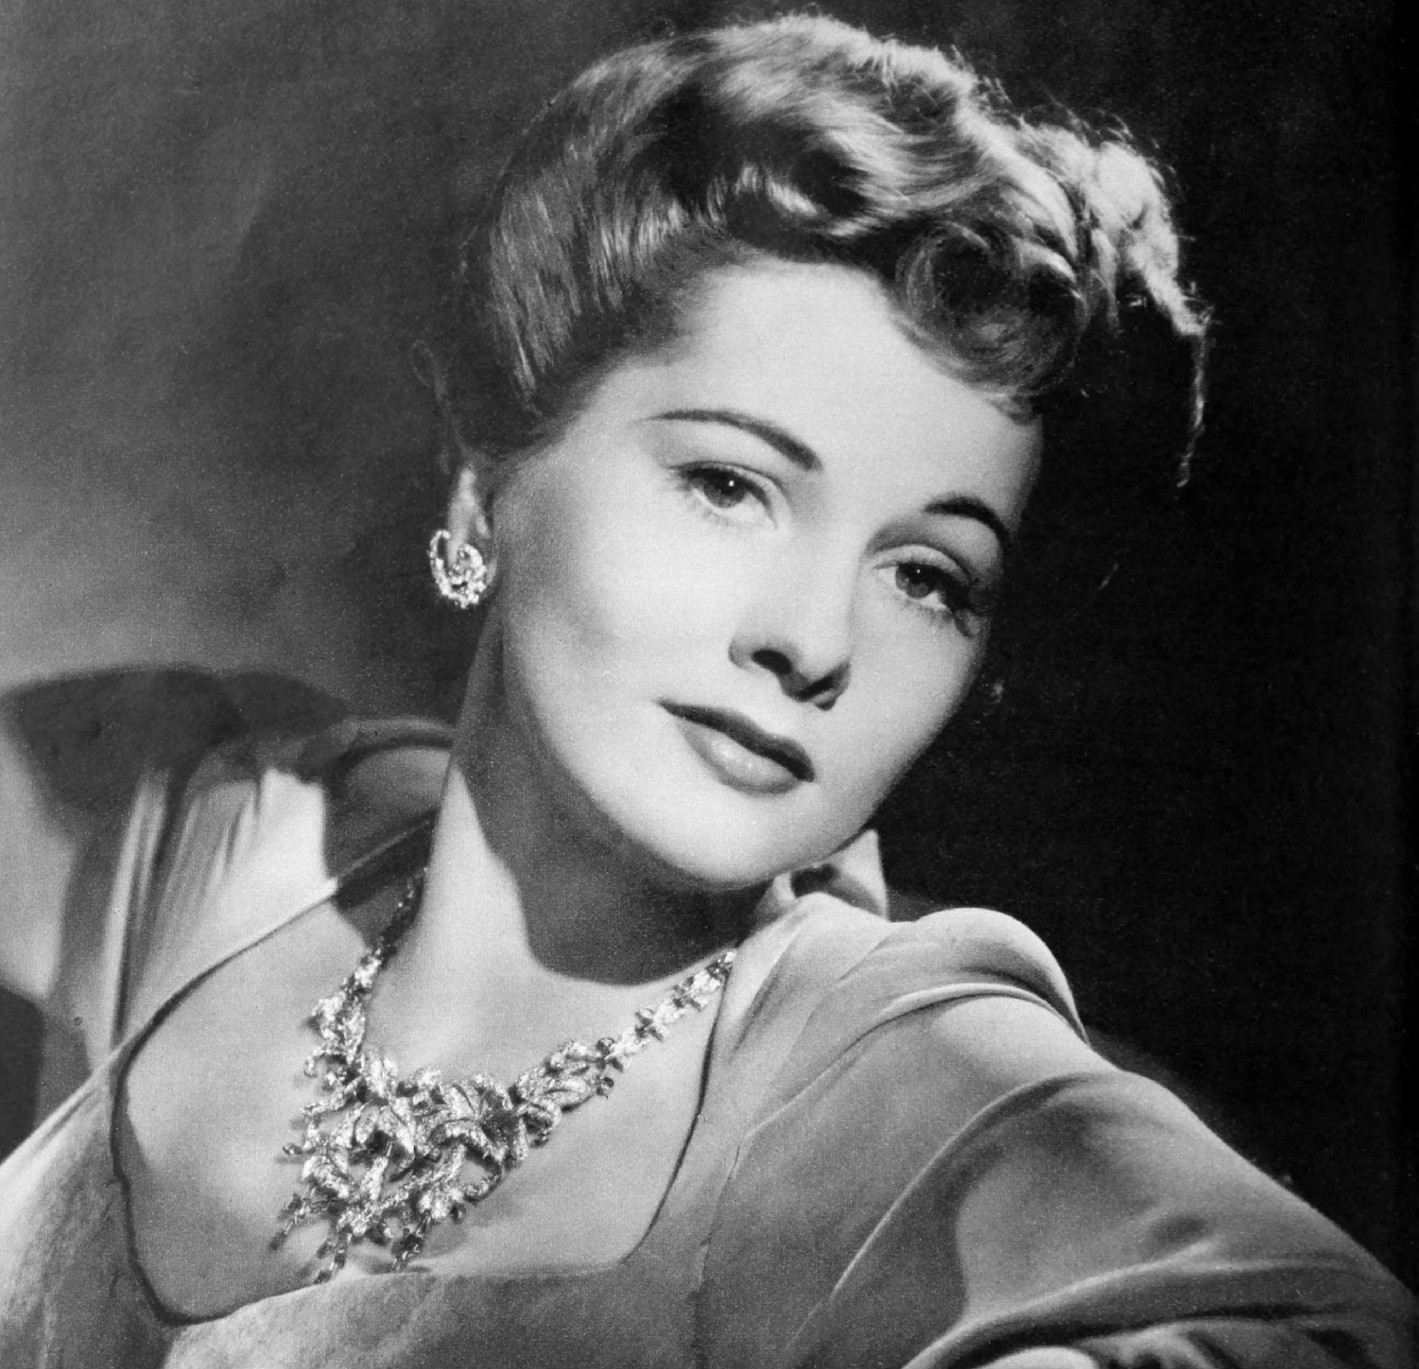 http://upload.wikimedia.org/wikipedia/commons/a/a7/Joan_Fontaine_1942.jpg